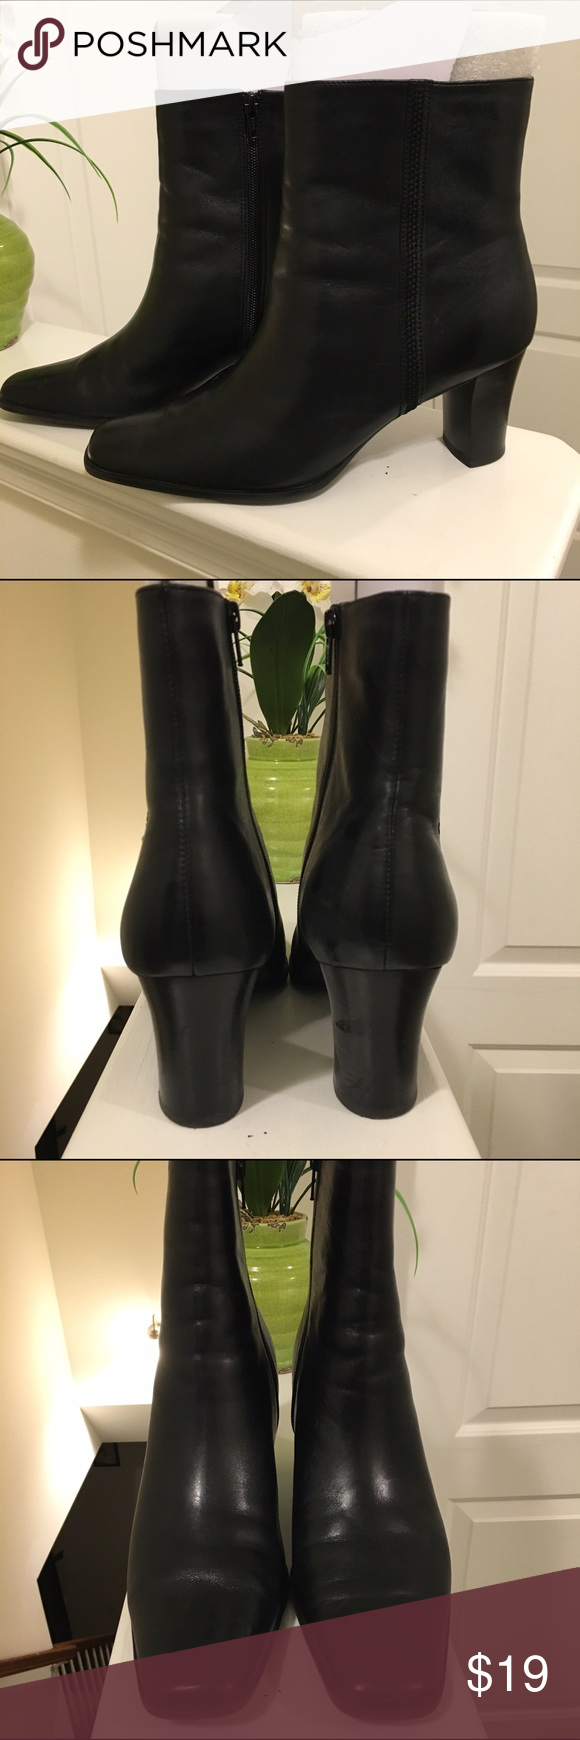 🎈SALE🎈ANA Leather Ankle Boots | Women's 10M JC Penney ANA Brand | Ankle Boot | Leather (real) | 3-inch heel | Square toe | |inside zipper |Haven't worn them in years but they still look good. | Worn but loved. | Minimal scratches from normal use | Photos show condition. | Heather Black | PRICE IS FIRM. a.n.a Shoes Ankle Boots & Booties